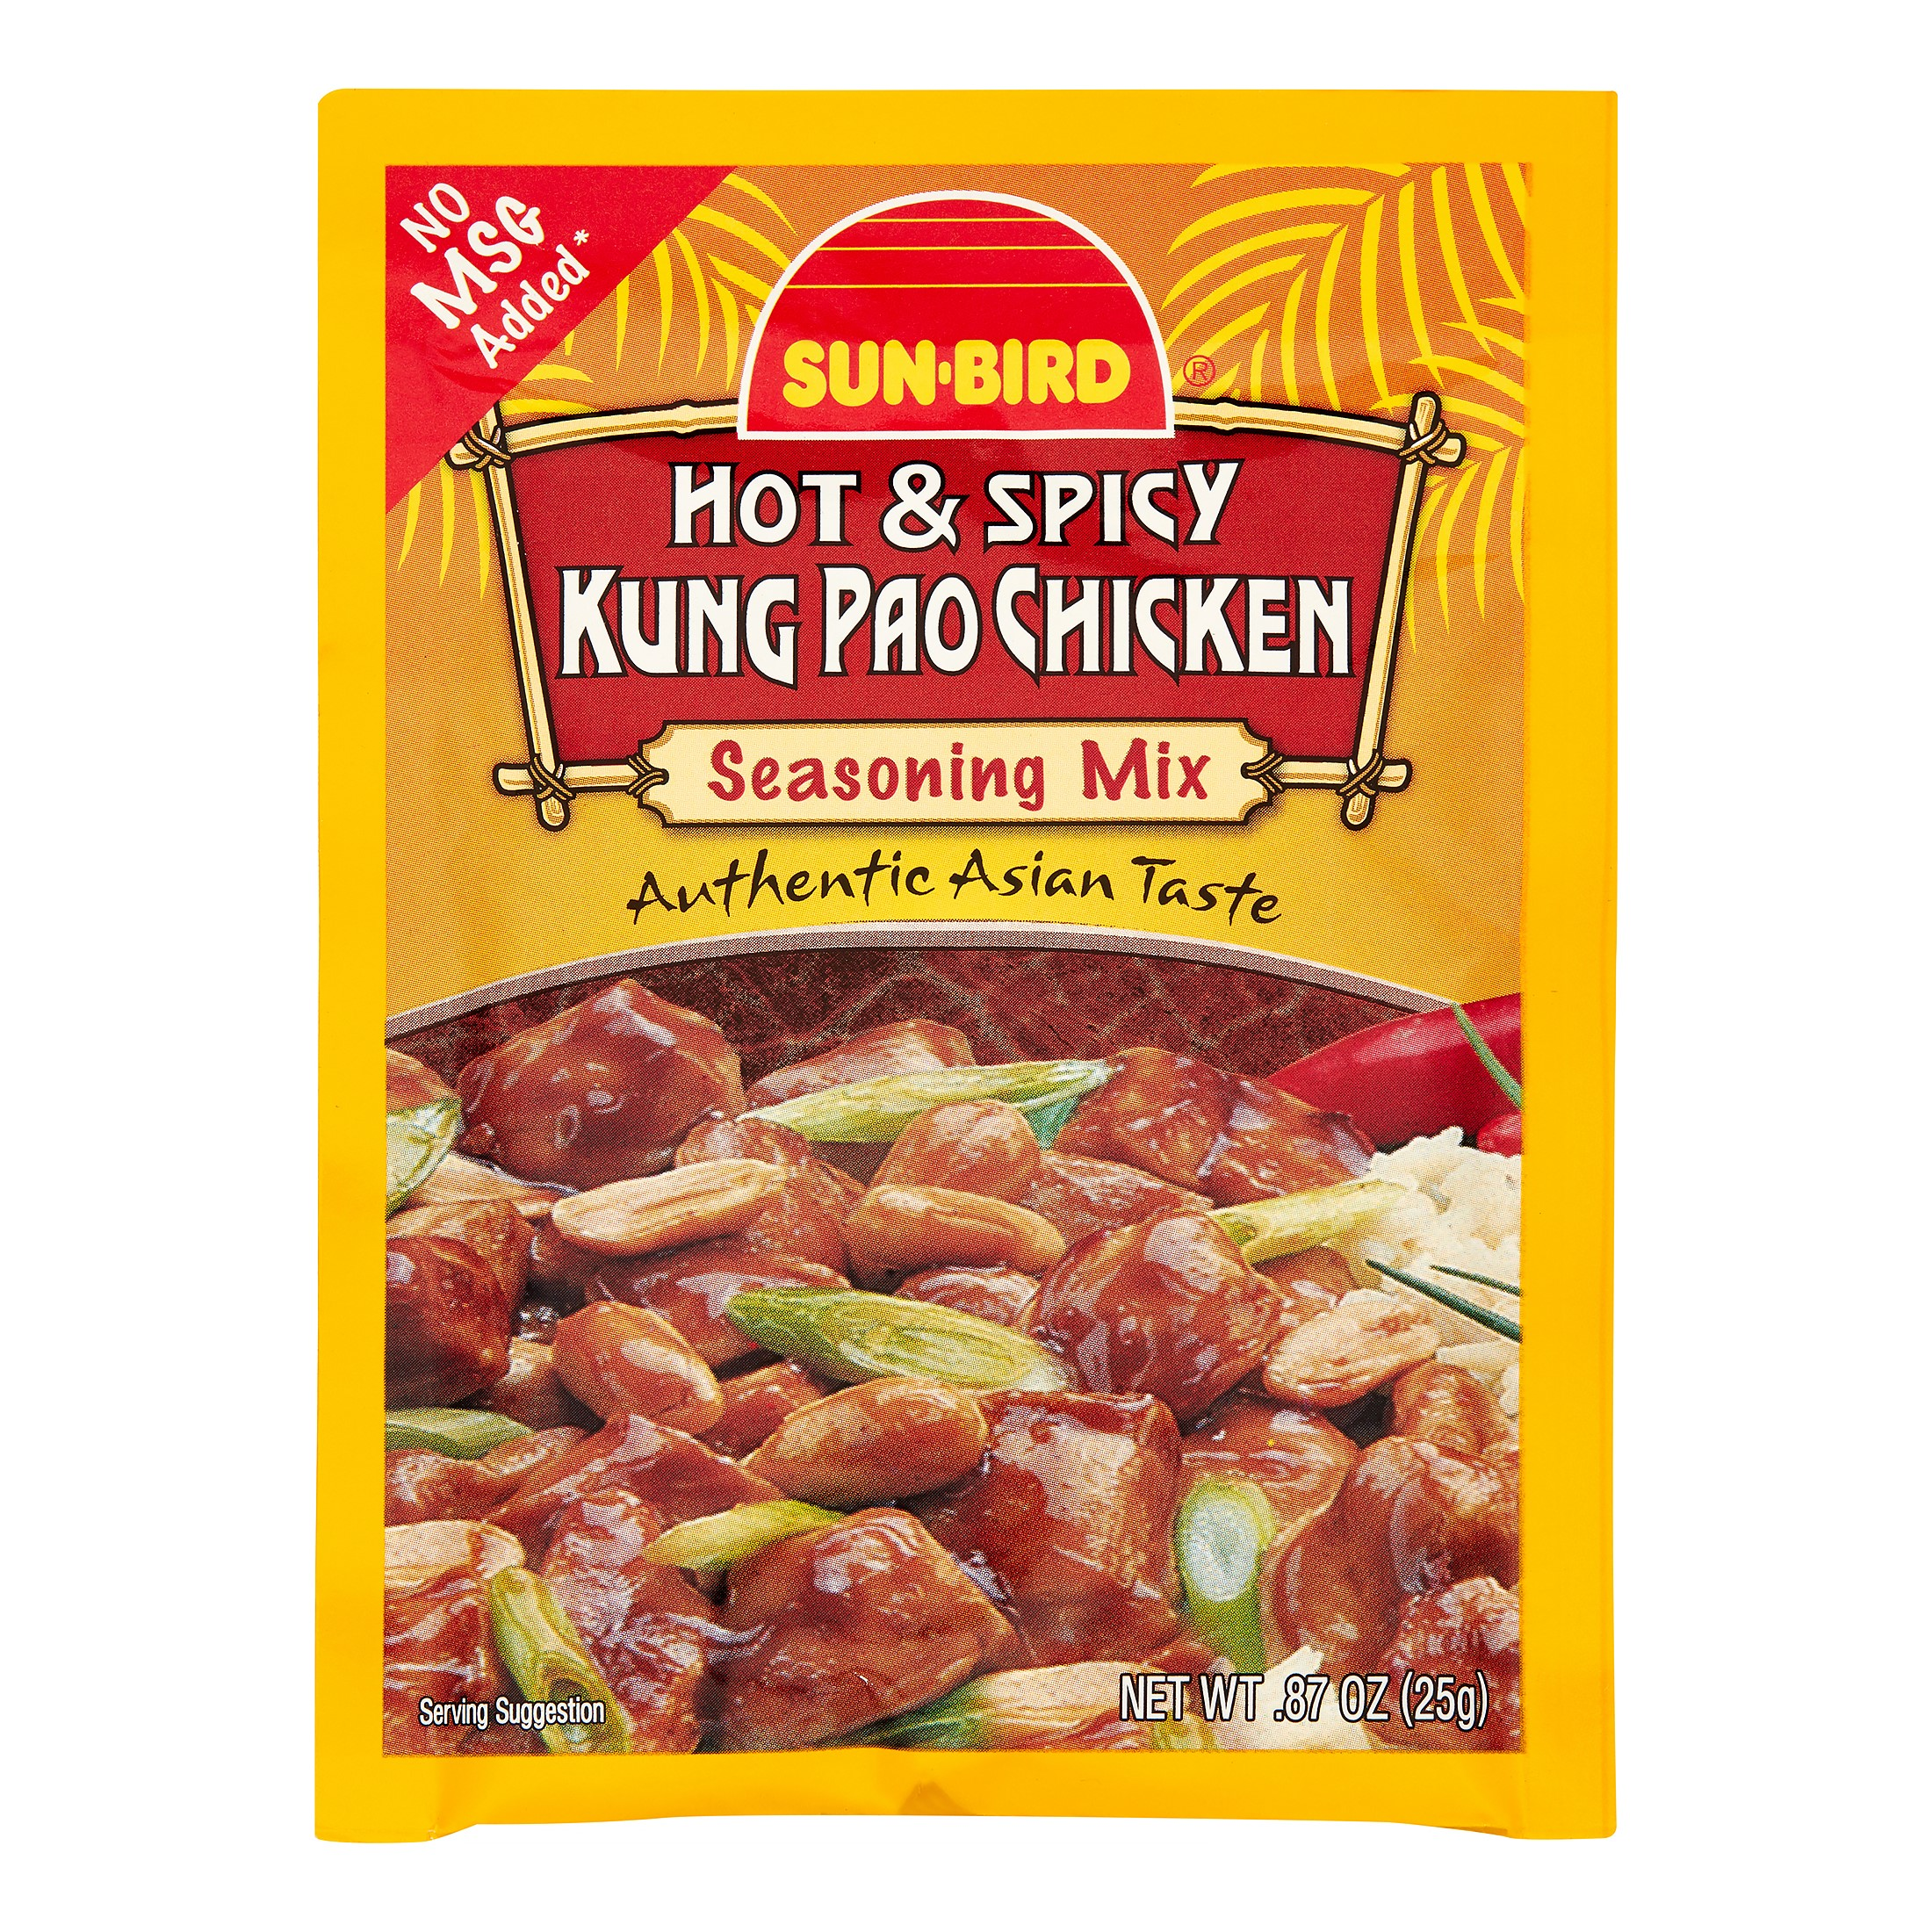 Sun?Bird Seasoning Mix, Hot & Spicy Kung Pao Chicken, 0.87 Oz